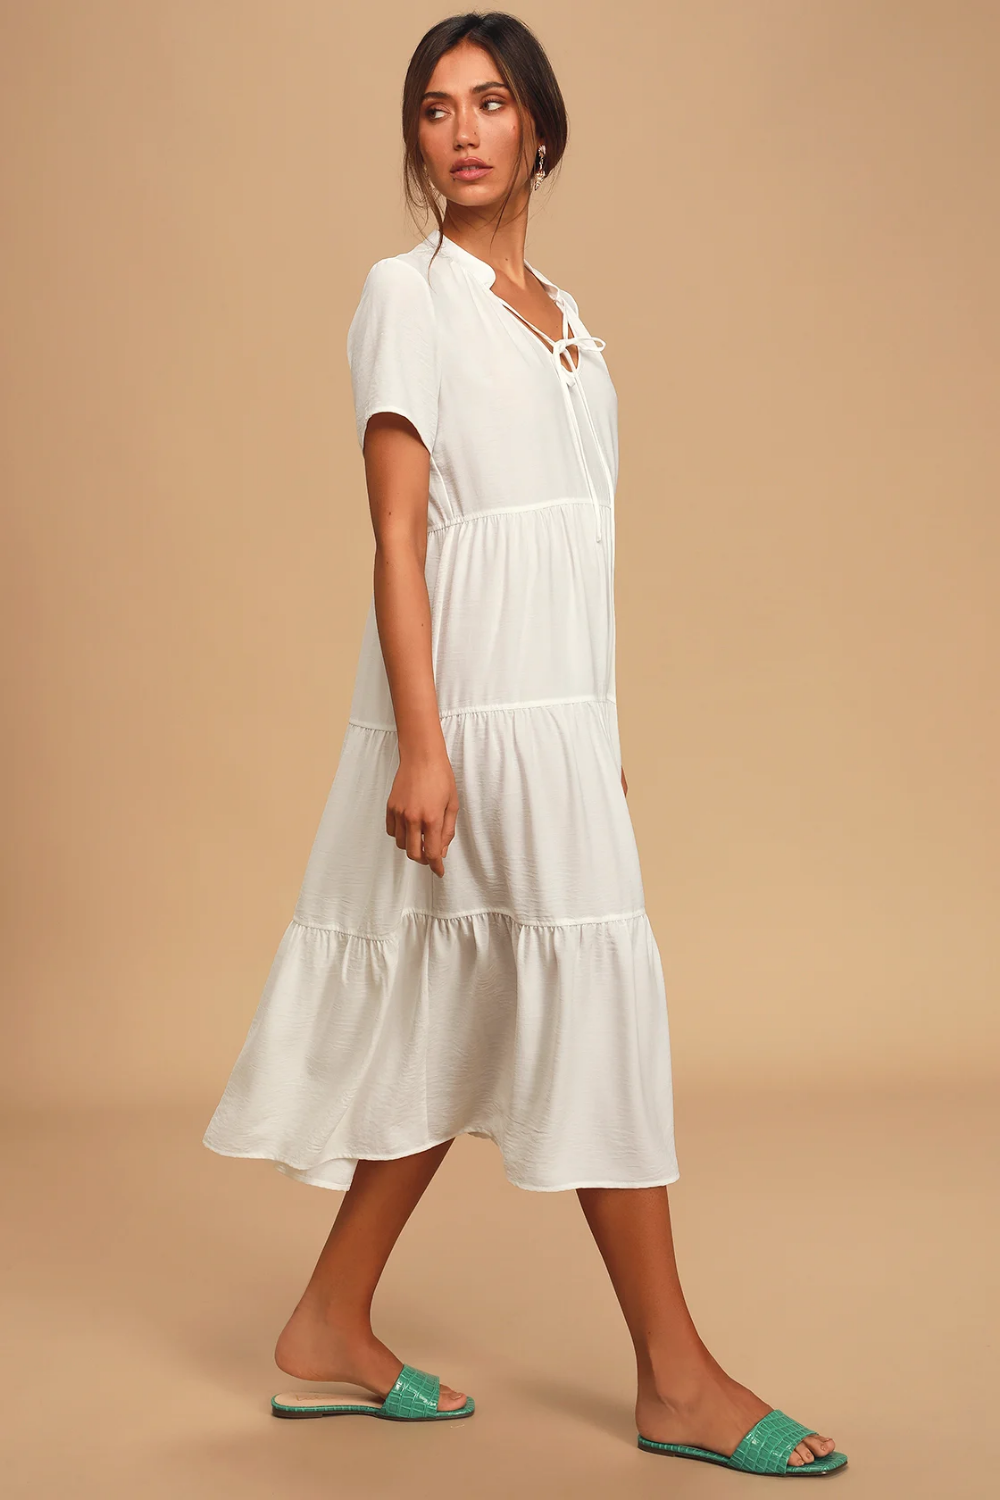 Lovely To Meet You White Short Sleeve Tiered Midi Dress Midi Short Sleeve Dress White Midi Dress Midi Dress [ 1500 x 1000 Pixel ]